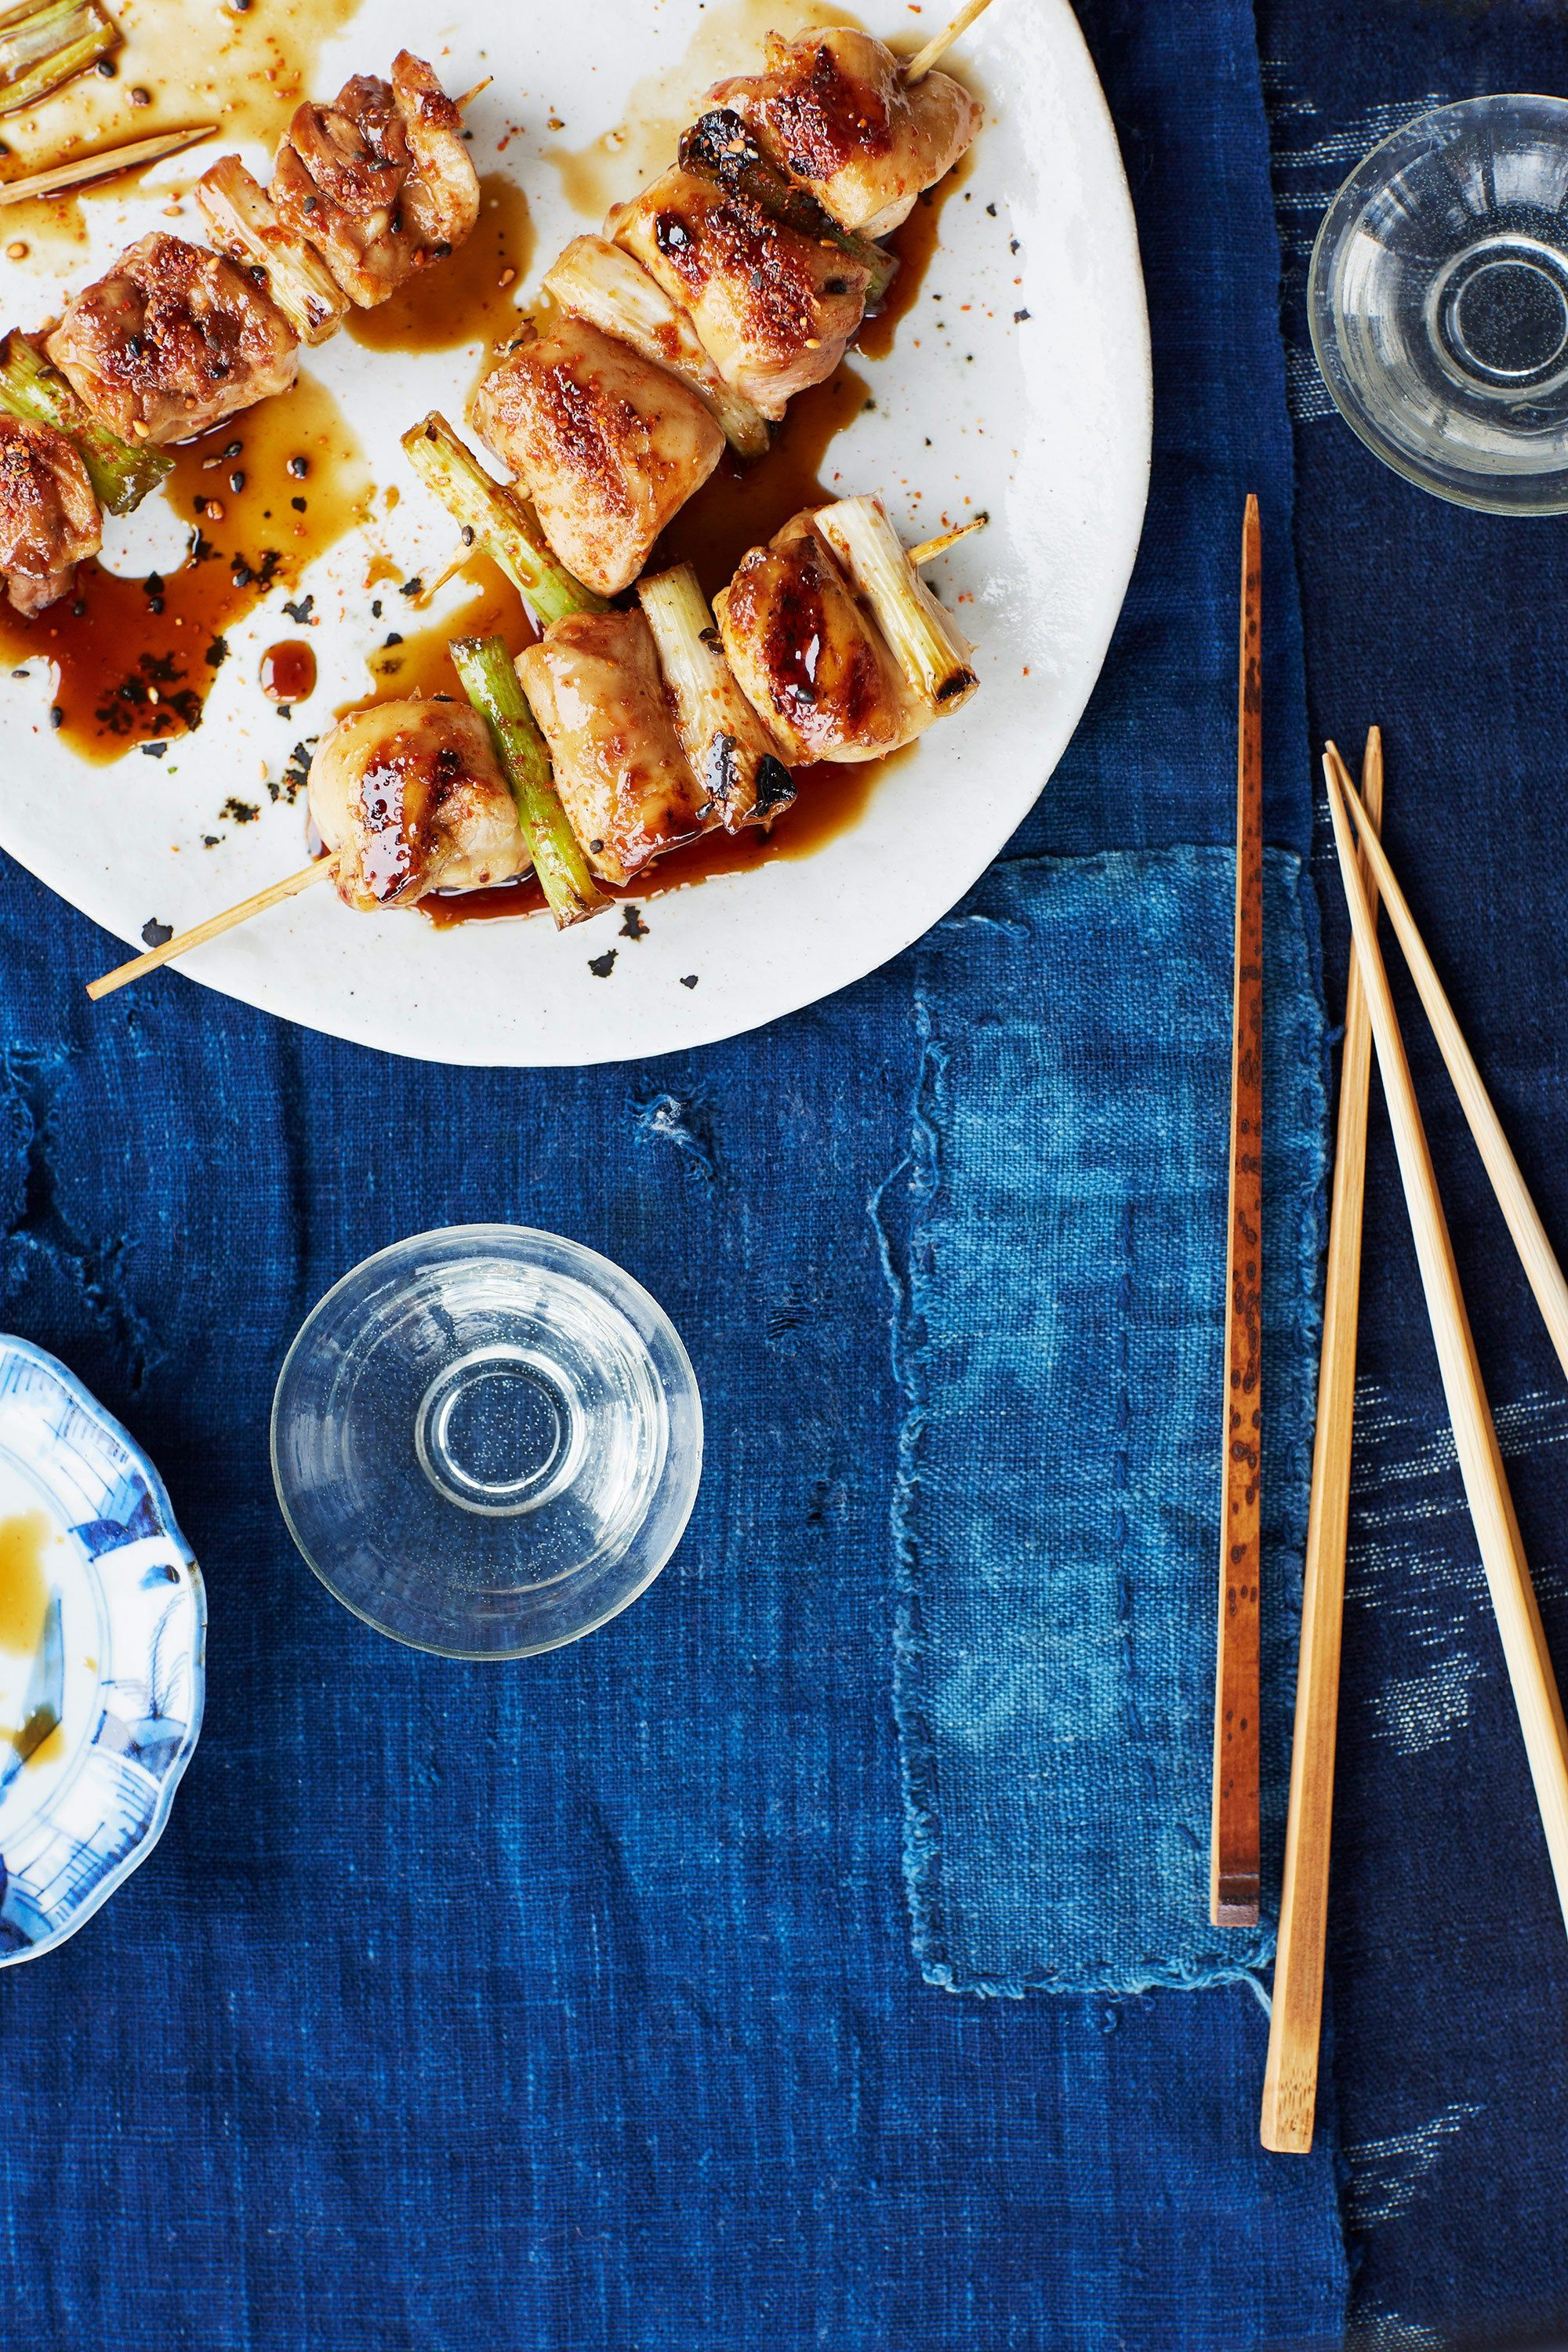 3 Delicious Healthy Japanese Recipes To Cook This Weekend In 2020 Healthy Japanese Recipes Recipes Easy Japanese Recipes